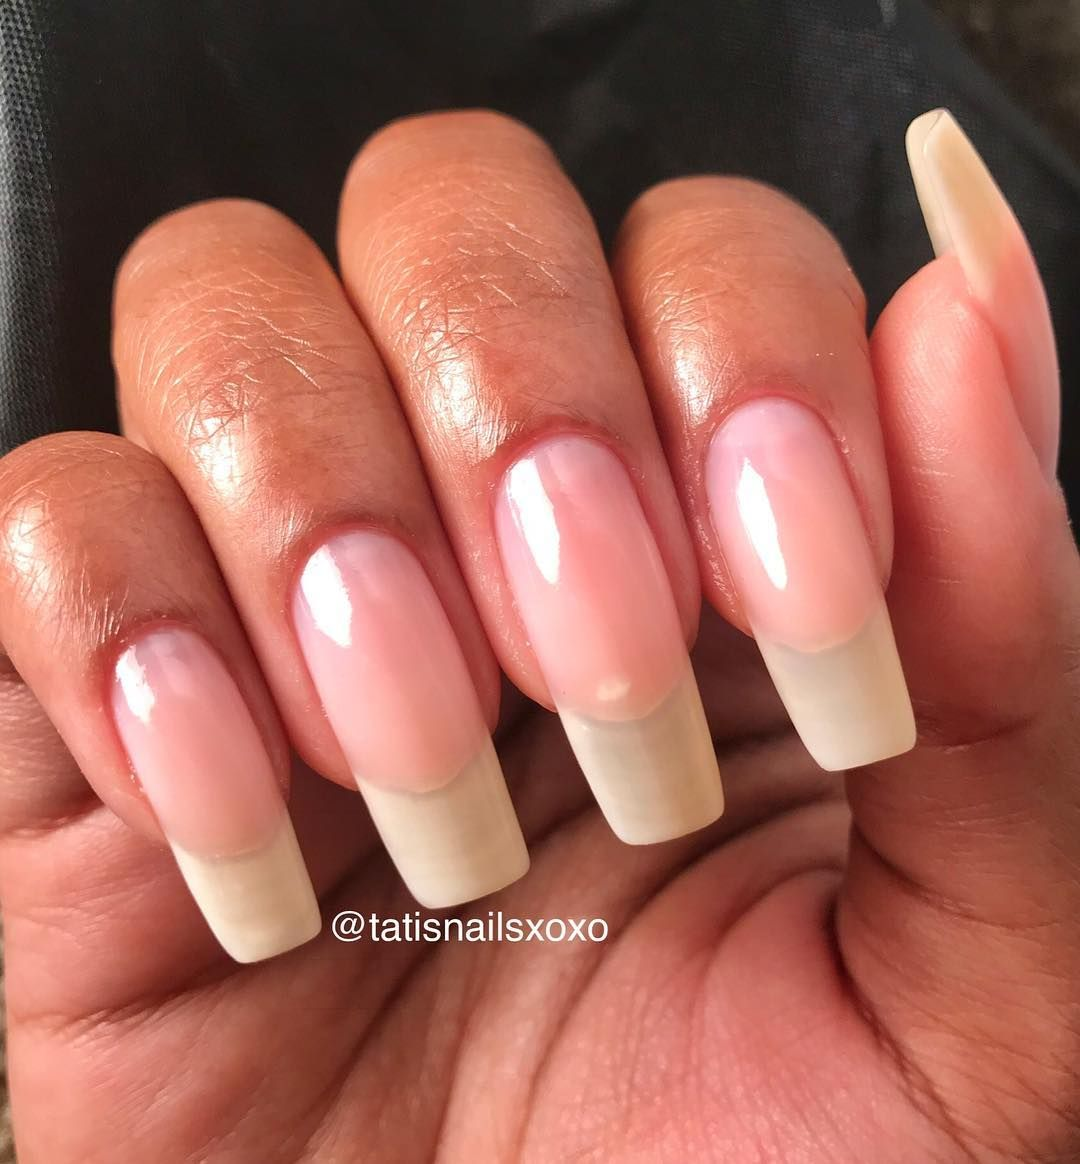 Natural Nails Comment Your Favorite Shape Ok So Having The Square Shape Is So Exhausting Because I Had To File Them Natural Nails Lilac Nails Nails